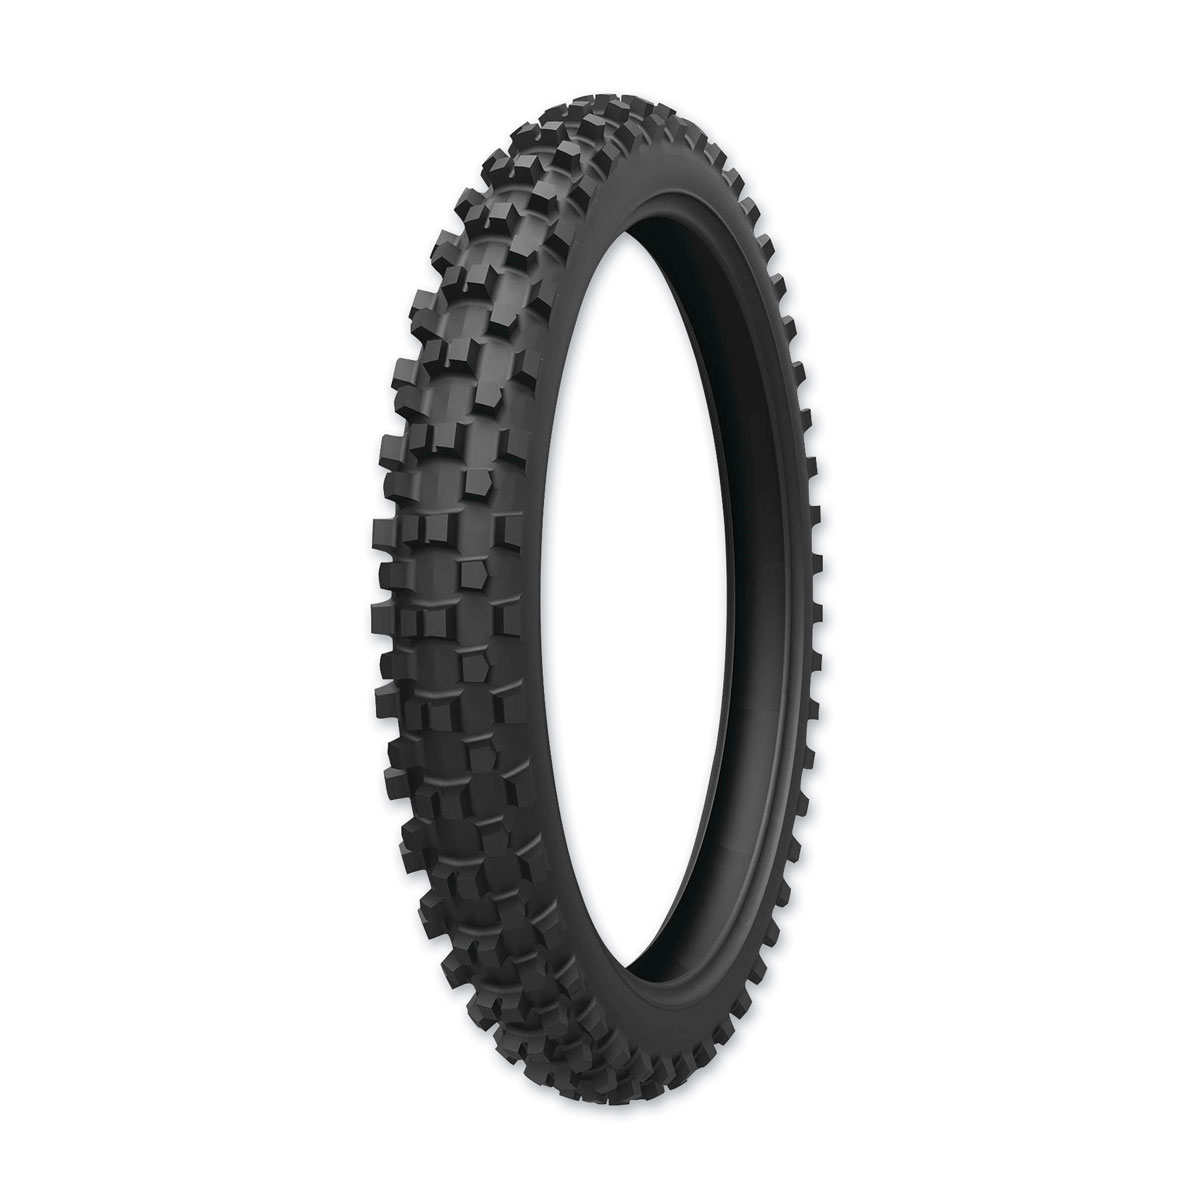 Kenda Tires Washougal II 60/100-14 Front Tire